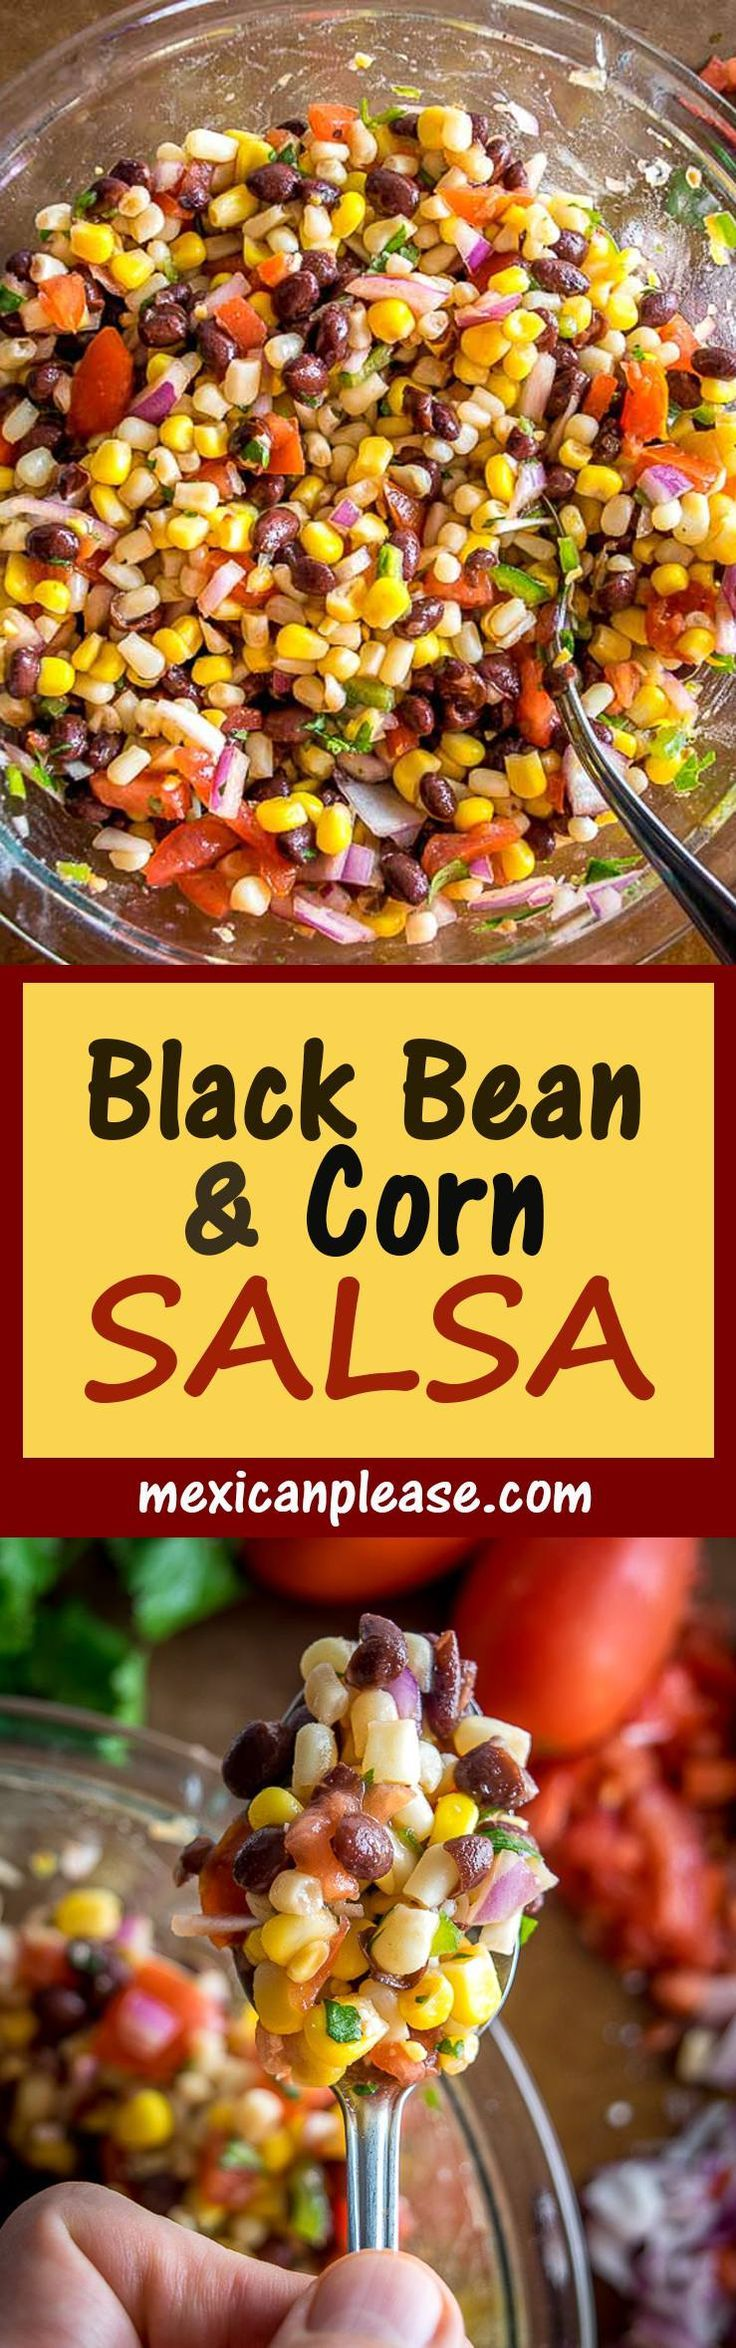 This wildly versatile Black Bean and Corn Salsa will have you dreaming up all sorts of ways to use it:  tacos, salads, even wraps!  I think it tastes best when the lime flavor is at the forefront so feel free to add another squeeze!  #salsa mexicanplease.com